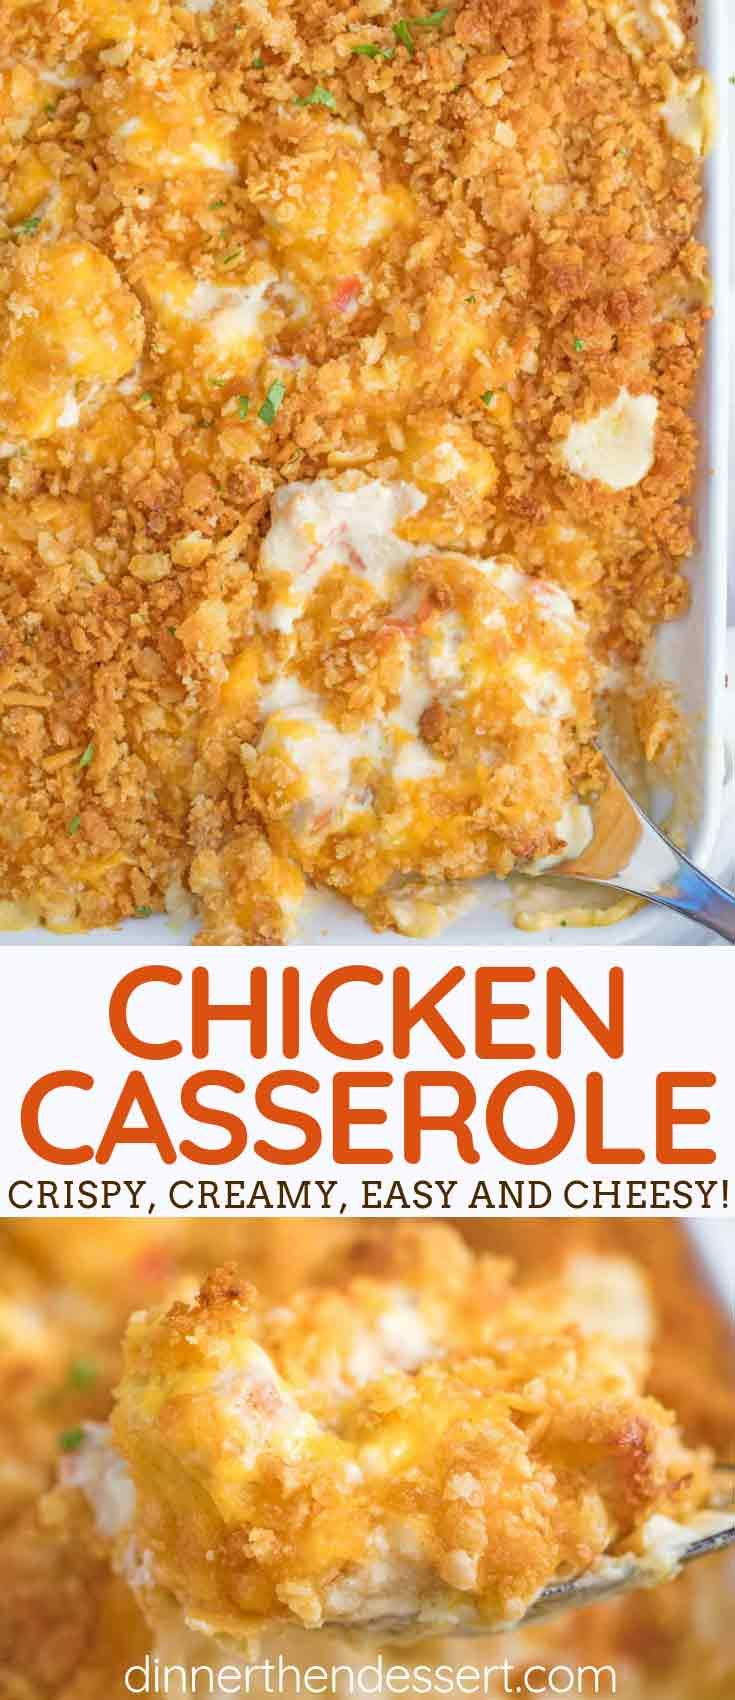 Easy Chicken Casserole is creamy and savory, made with chicken, onion, and bell peppers in a seasoned sauce and topped with Ritz crackers and cheddar cheese, perfectly cooked in 45 minutes! #creamychickencasserole